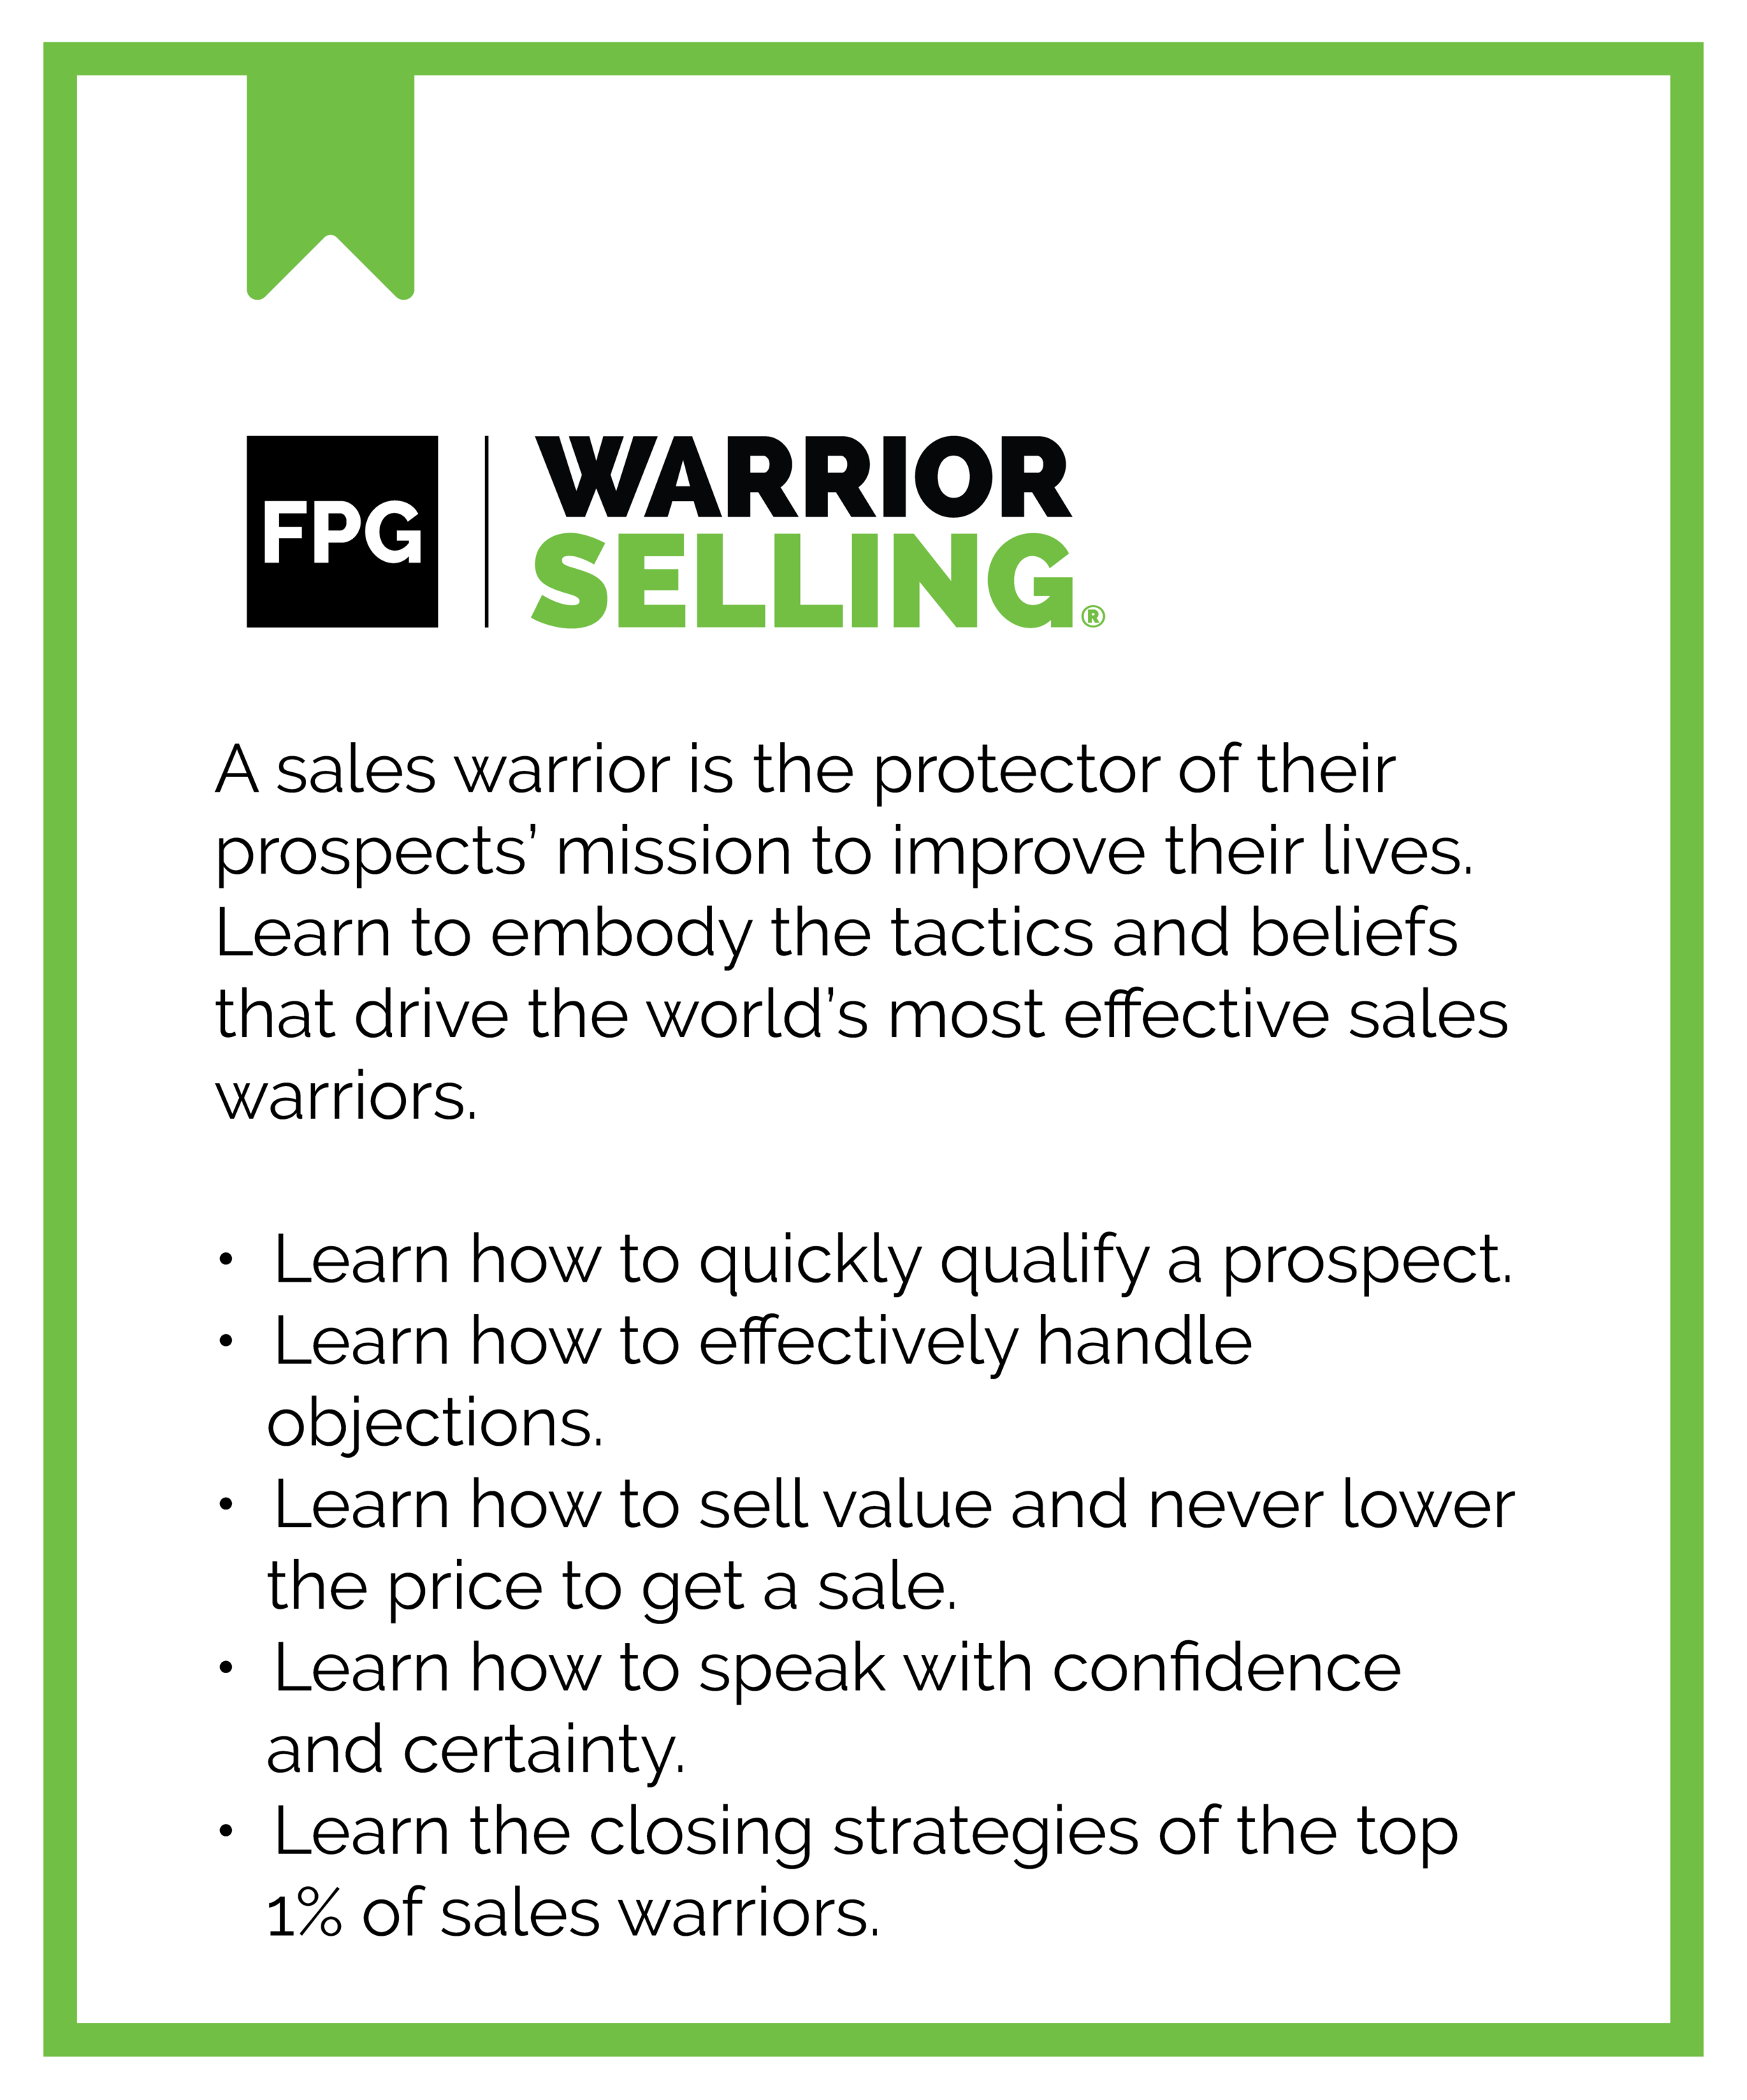 FPG Warrior Selling. A sales warrior is the protector of their prospects' mission to improve their lives. Learn to embody the tactics and beliefs that drive the world's most effective sales warriors. Learn how to quickly qualify a prospect. Learn how to effectively handle objections. Learn how to sell value and never lower the price to get a sale. Learn how to speak with confidence and certainty. Learn the closing strategies of the top 1% of sales warriors.